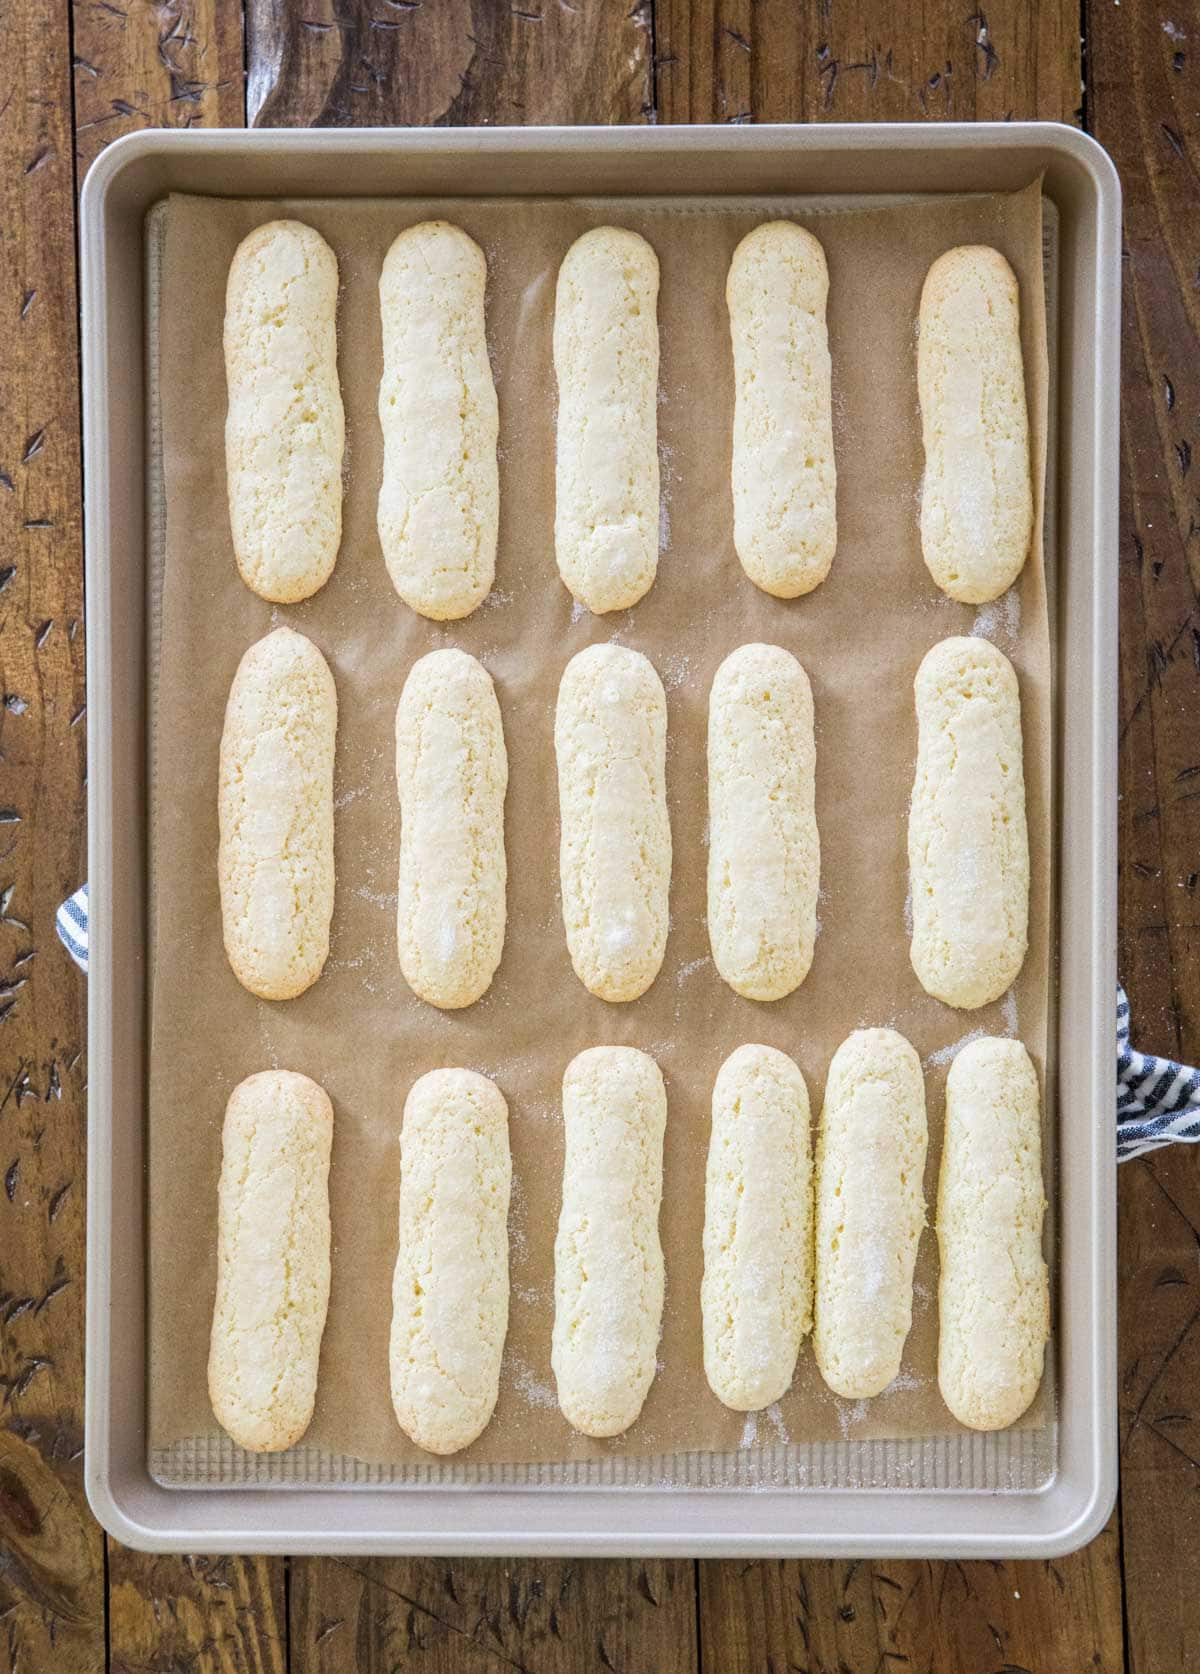 Ladyfingers on baking tray